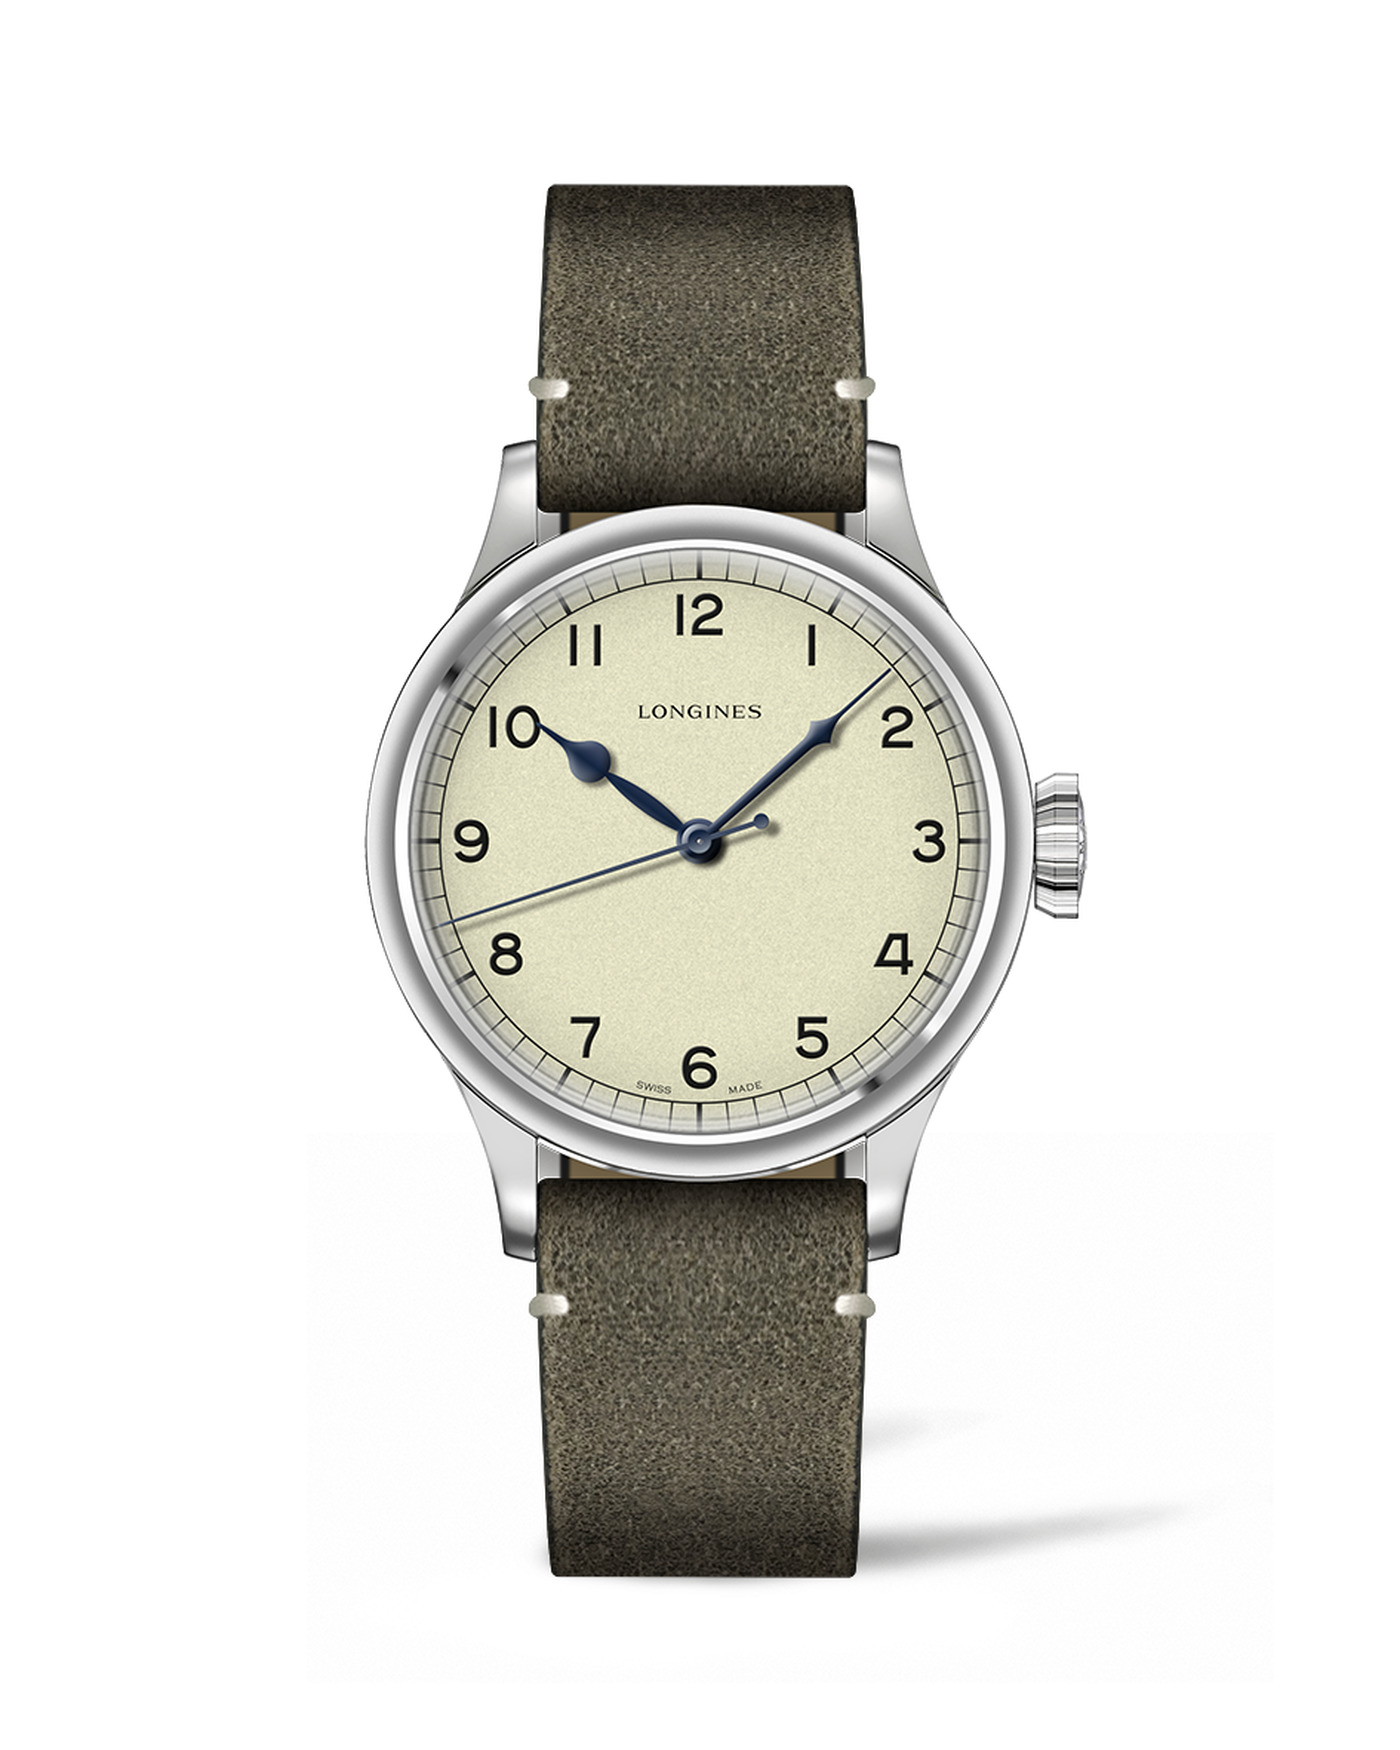 Longines The Longines Heritage Military Watch 8